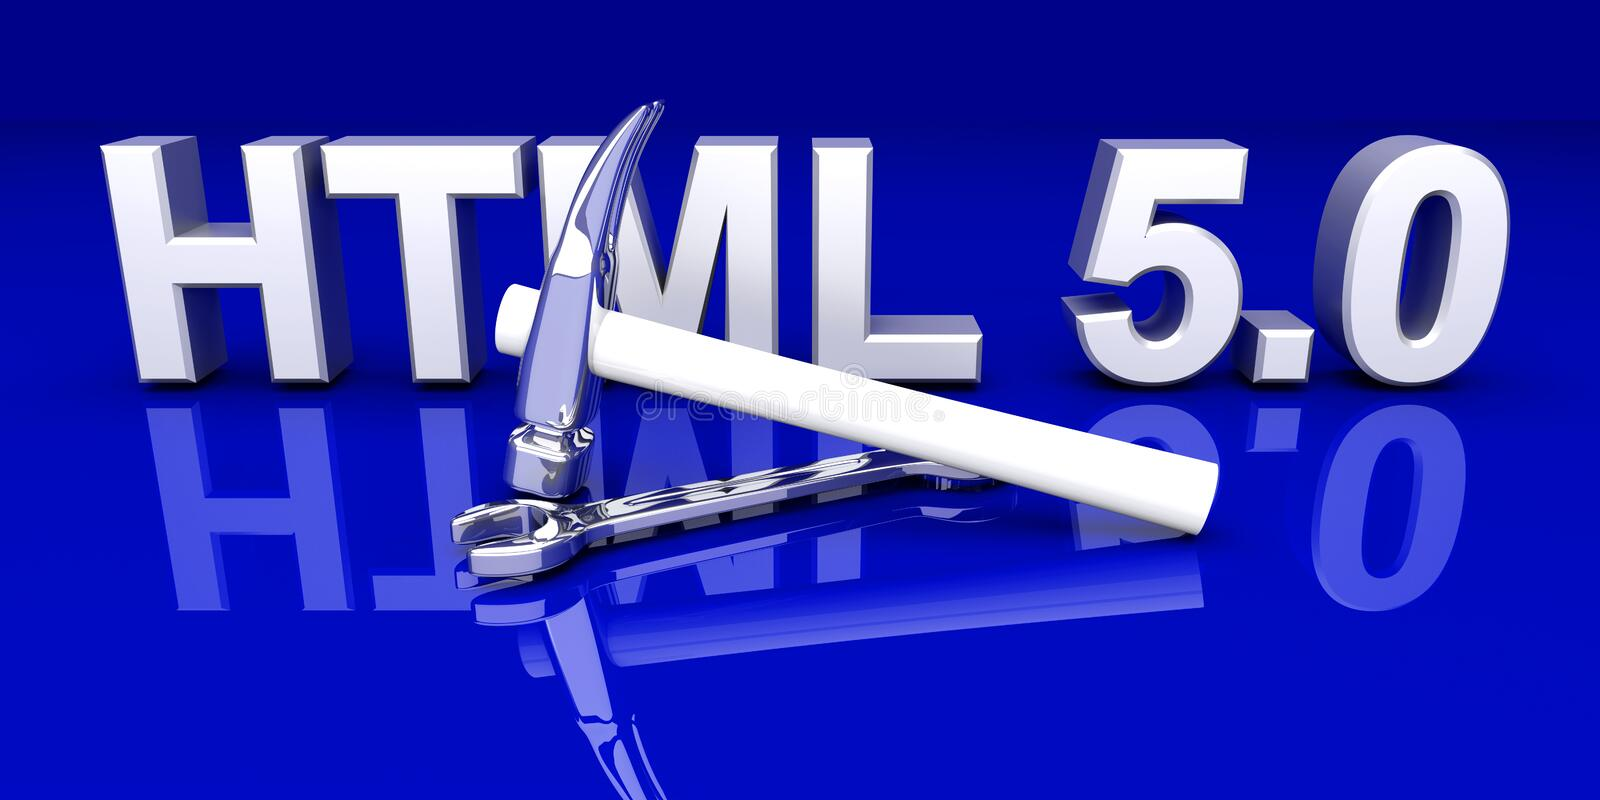 Download HTML 5.0 Tools stock illustration. Image of page, server - 33445972